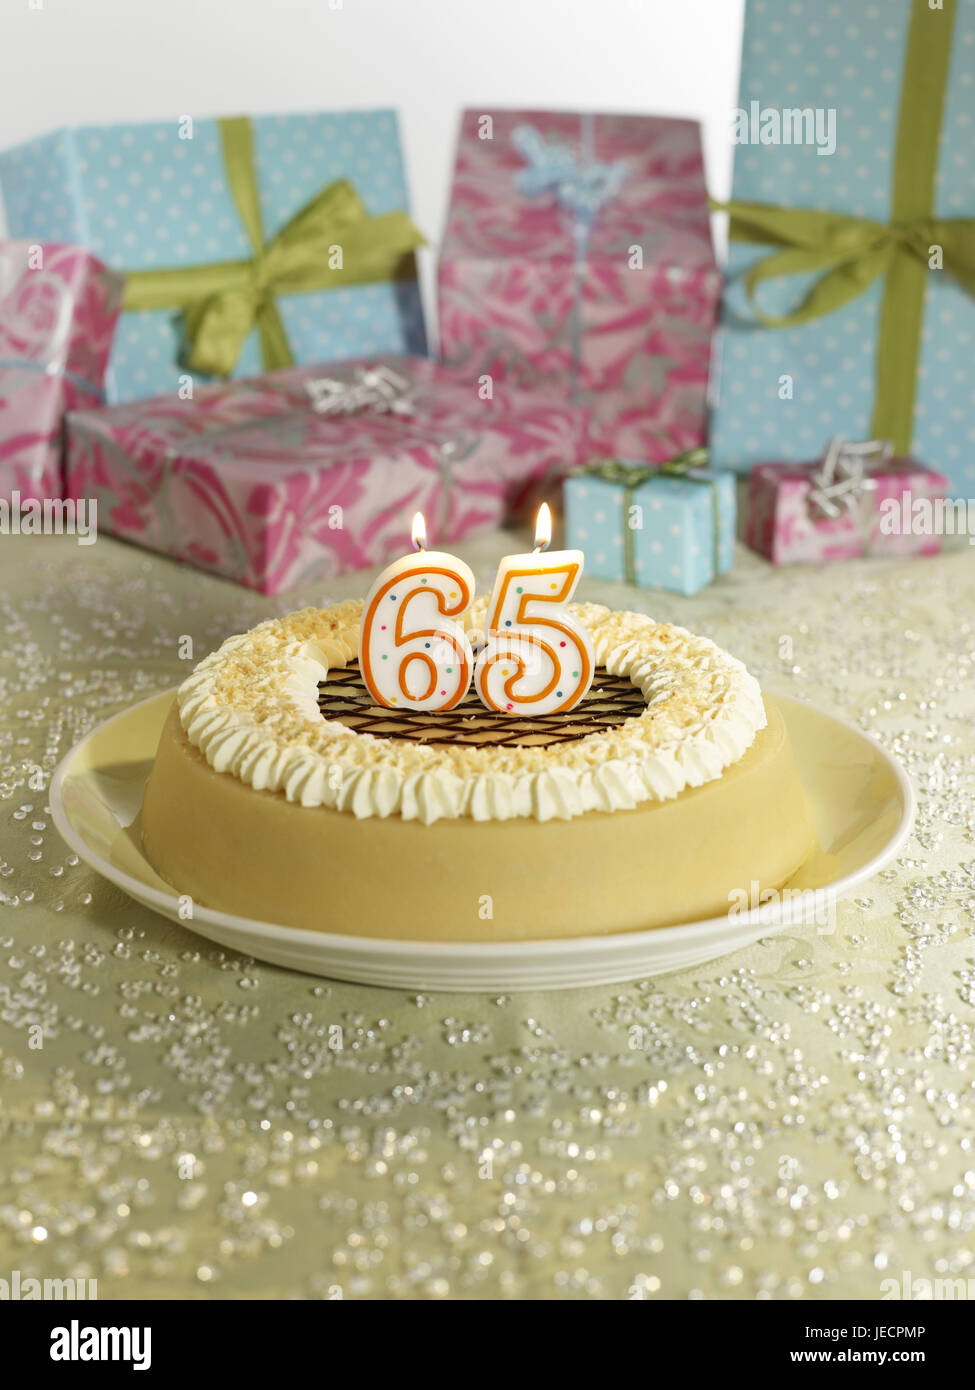 Birthday Cake Skyers 65 Presents Cakes Cream Gateau Number Burn Celebrate Surprise